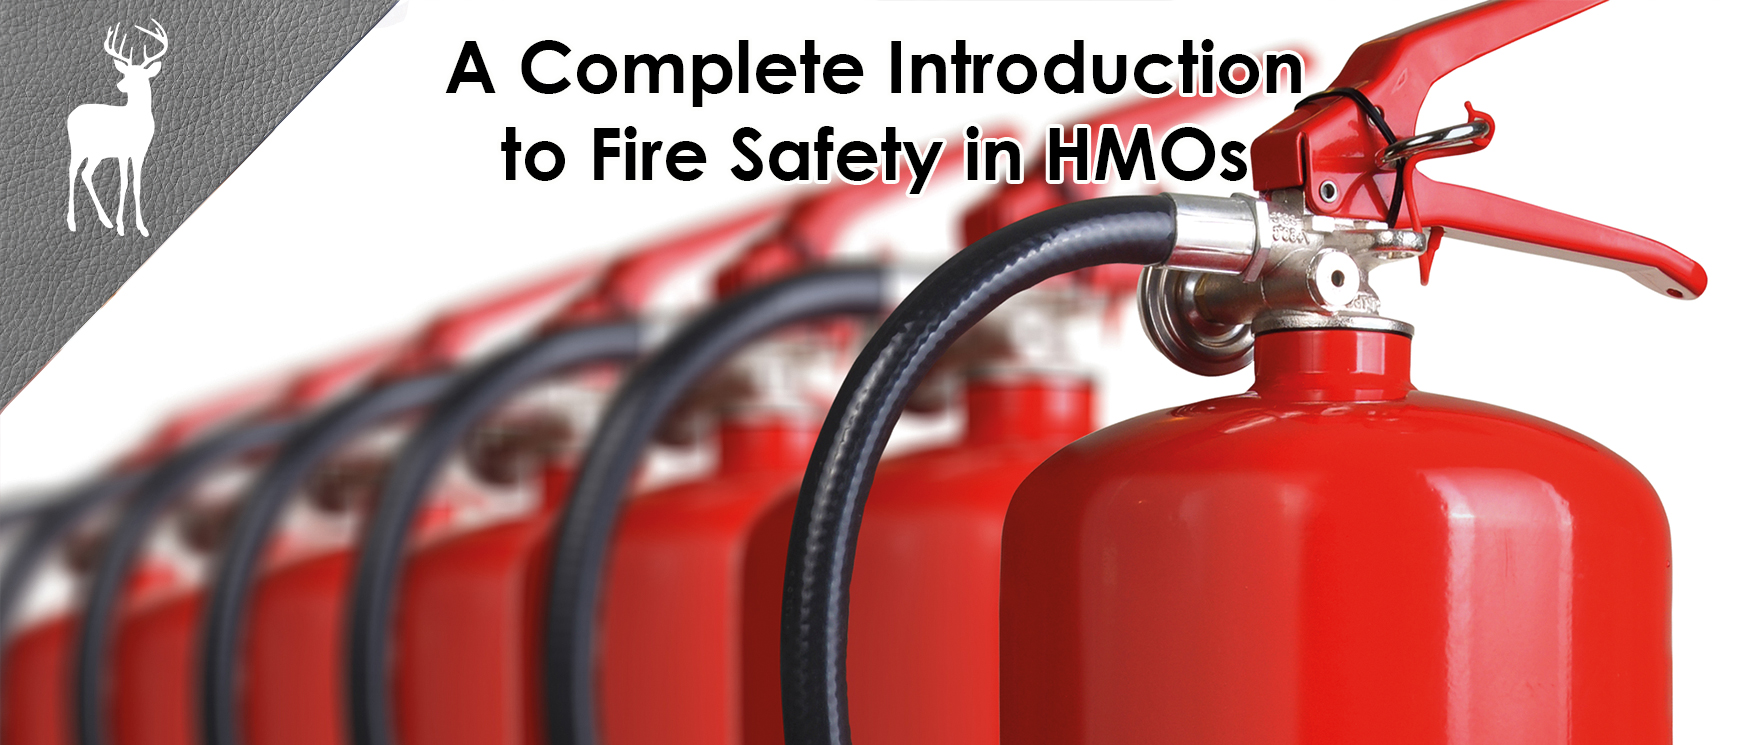 fire safe hmo, fire regulations lettings, fore regulations hmo